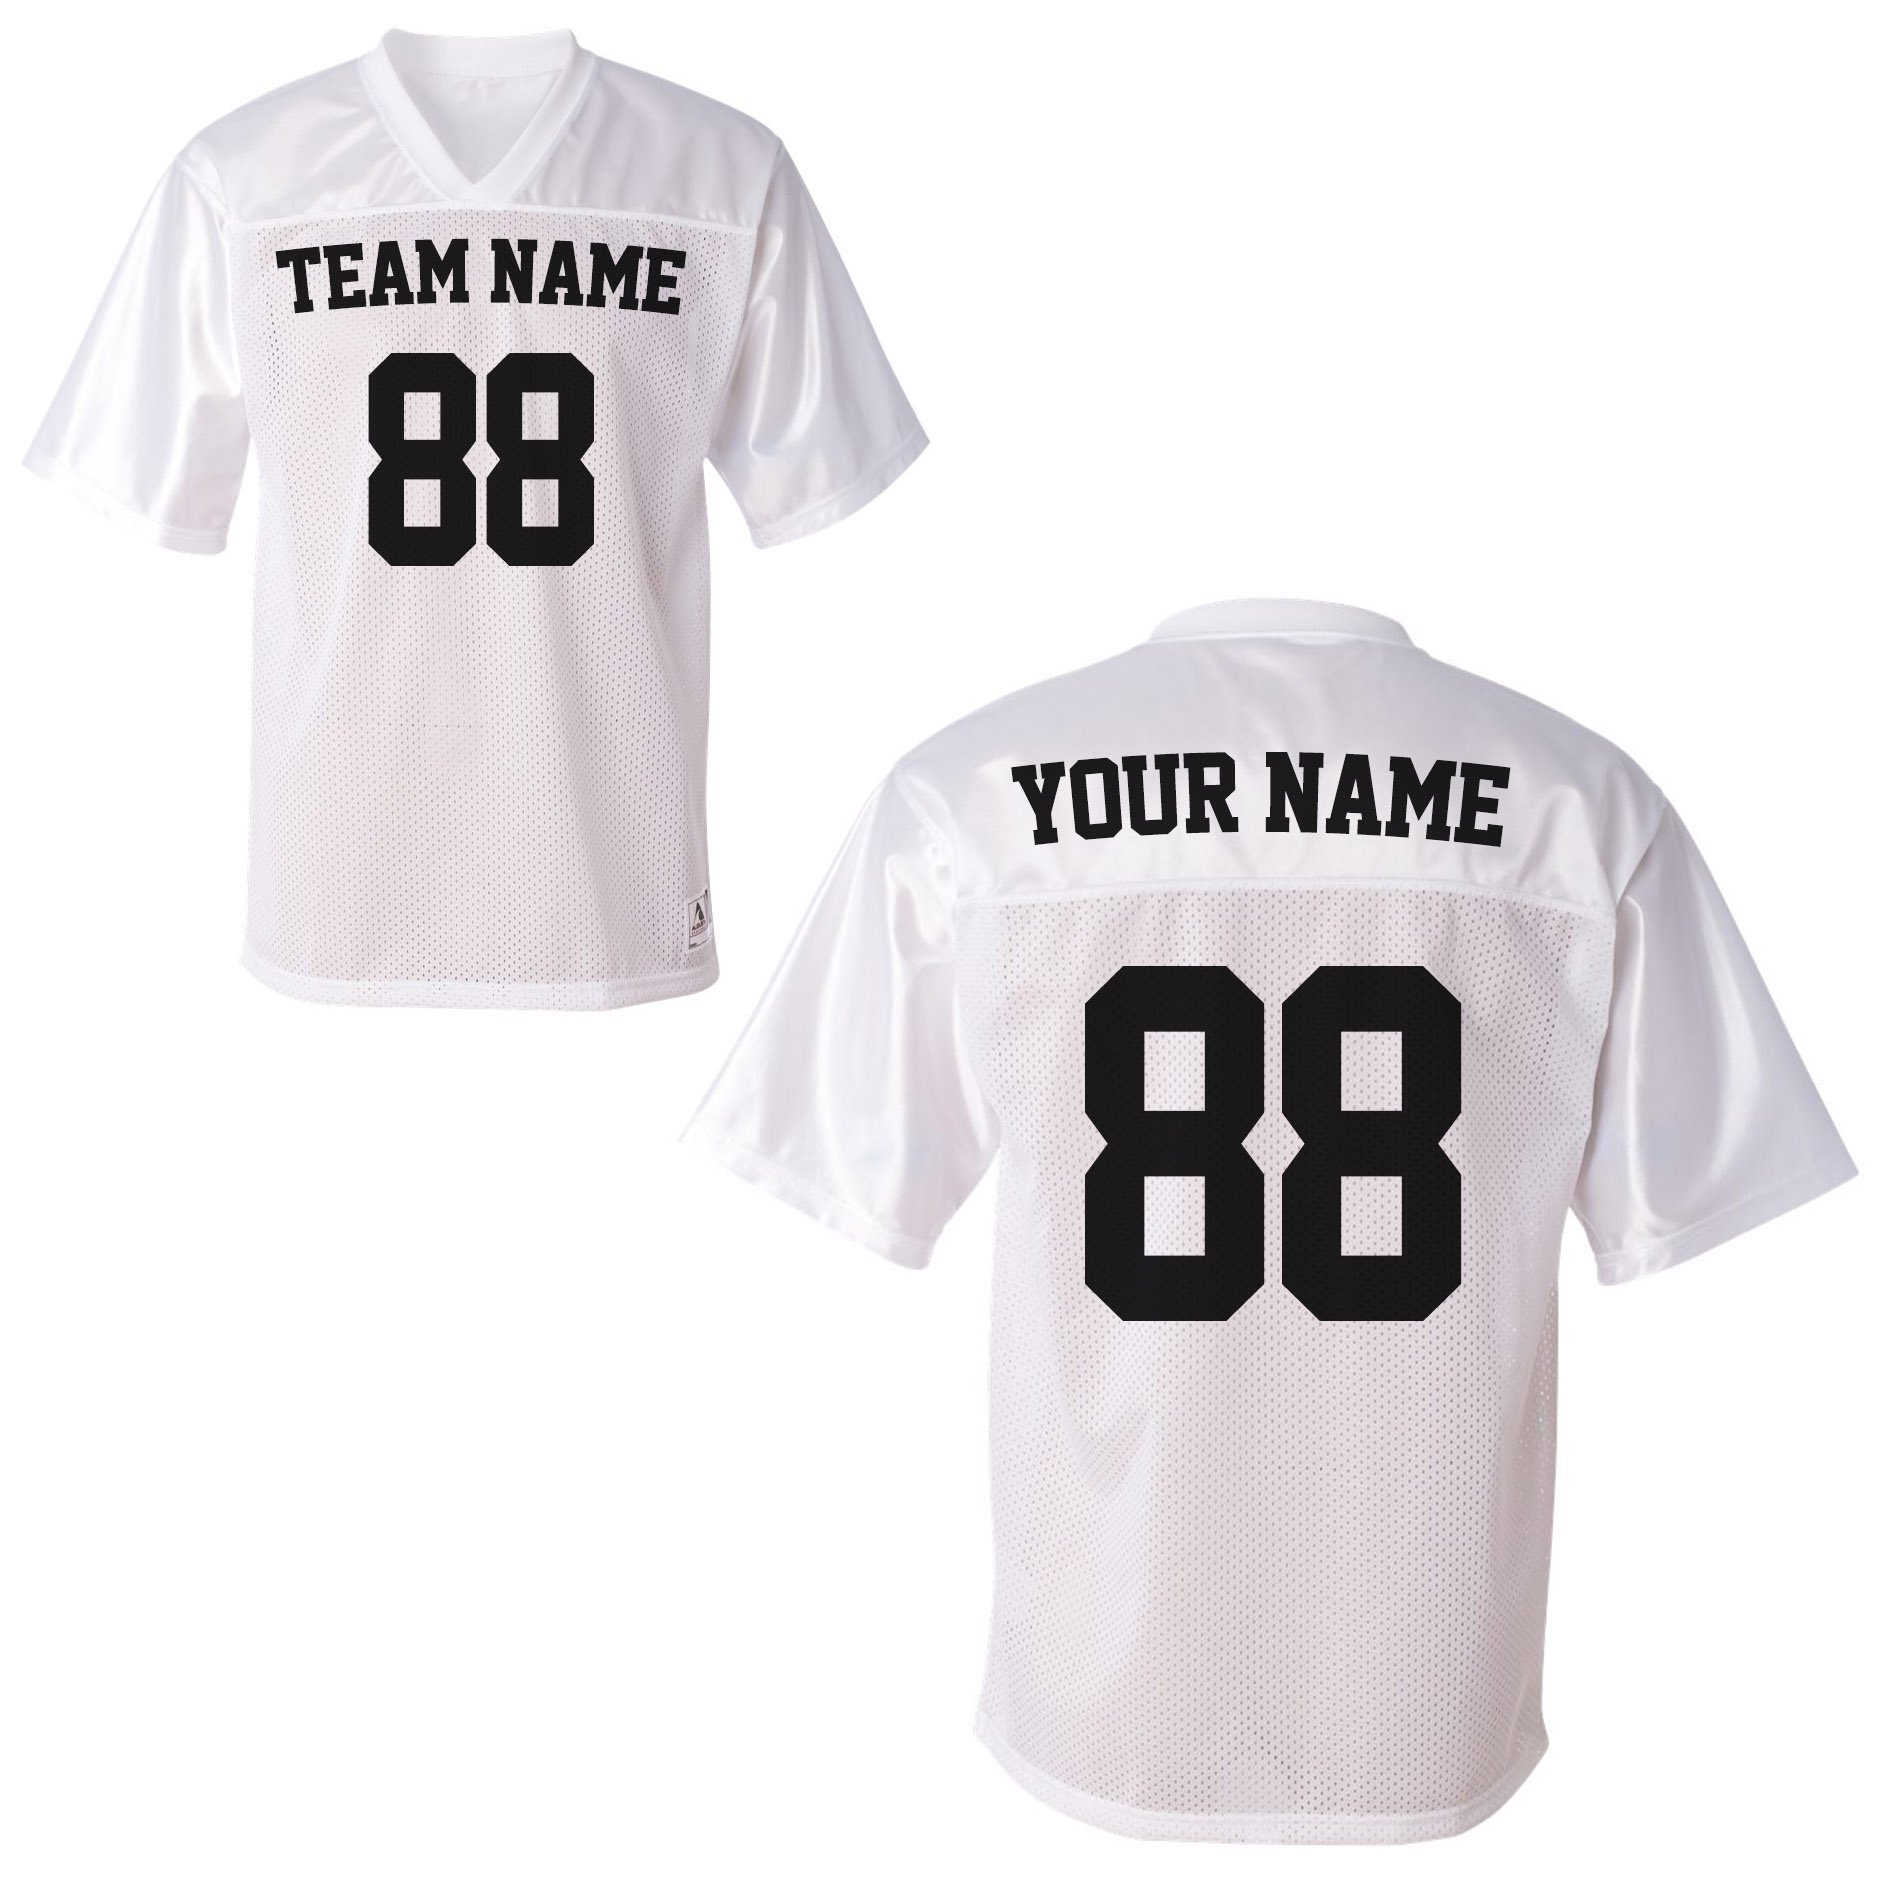 ea8f7578b Galleon - Custom Sports Jerseys - Make Your OWN Jersey Shirts - Personalized  Team Uniforms White